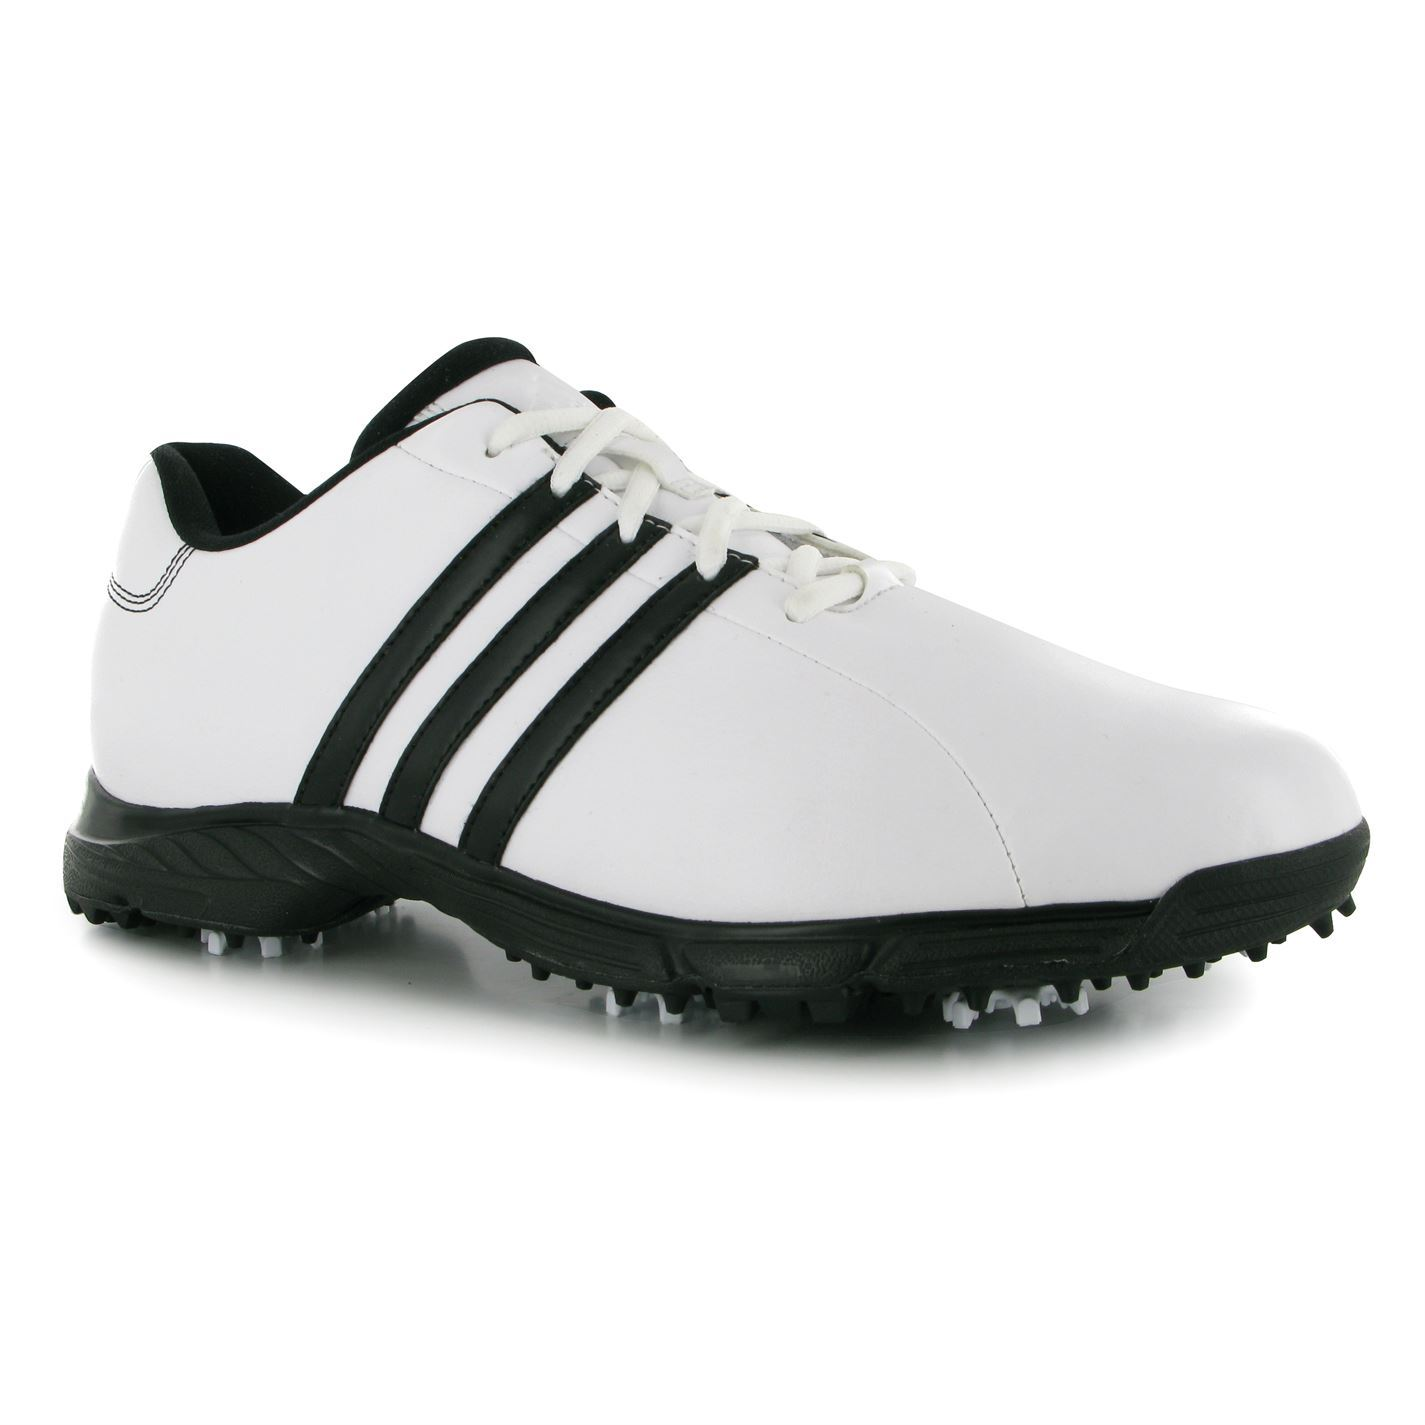 low priced 45392 73f3a Adidas Mens Golflite Golf Shoes Lightweight EVA Insole Thintech Traxion  adiWear